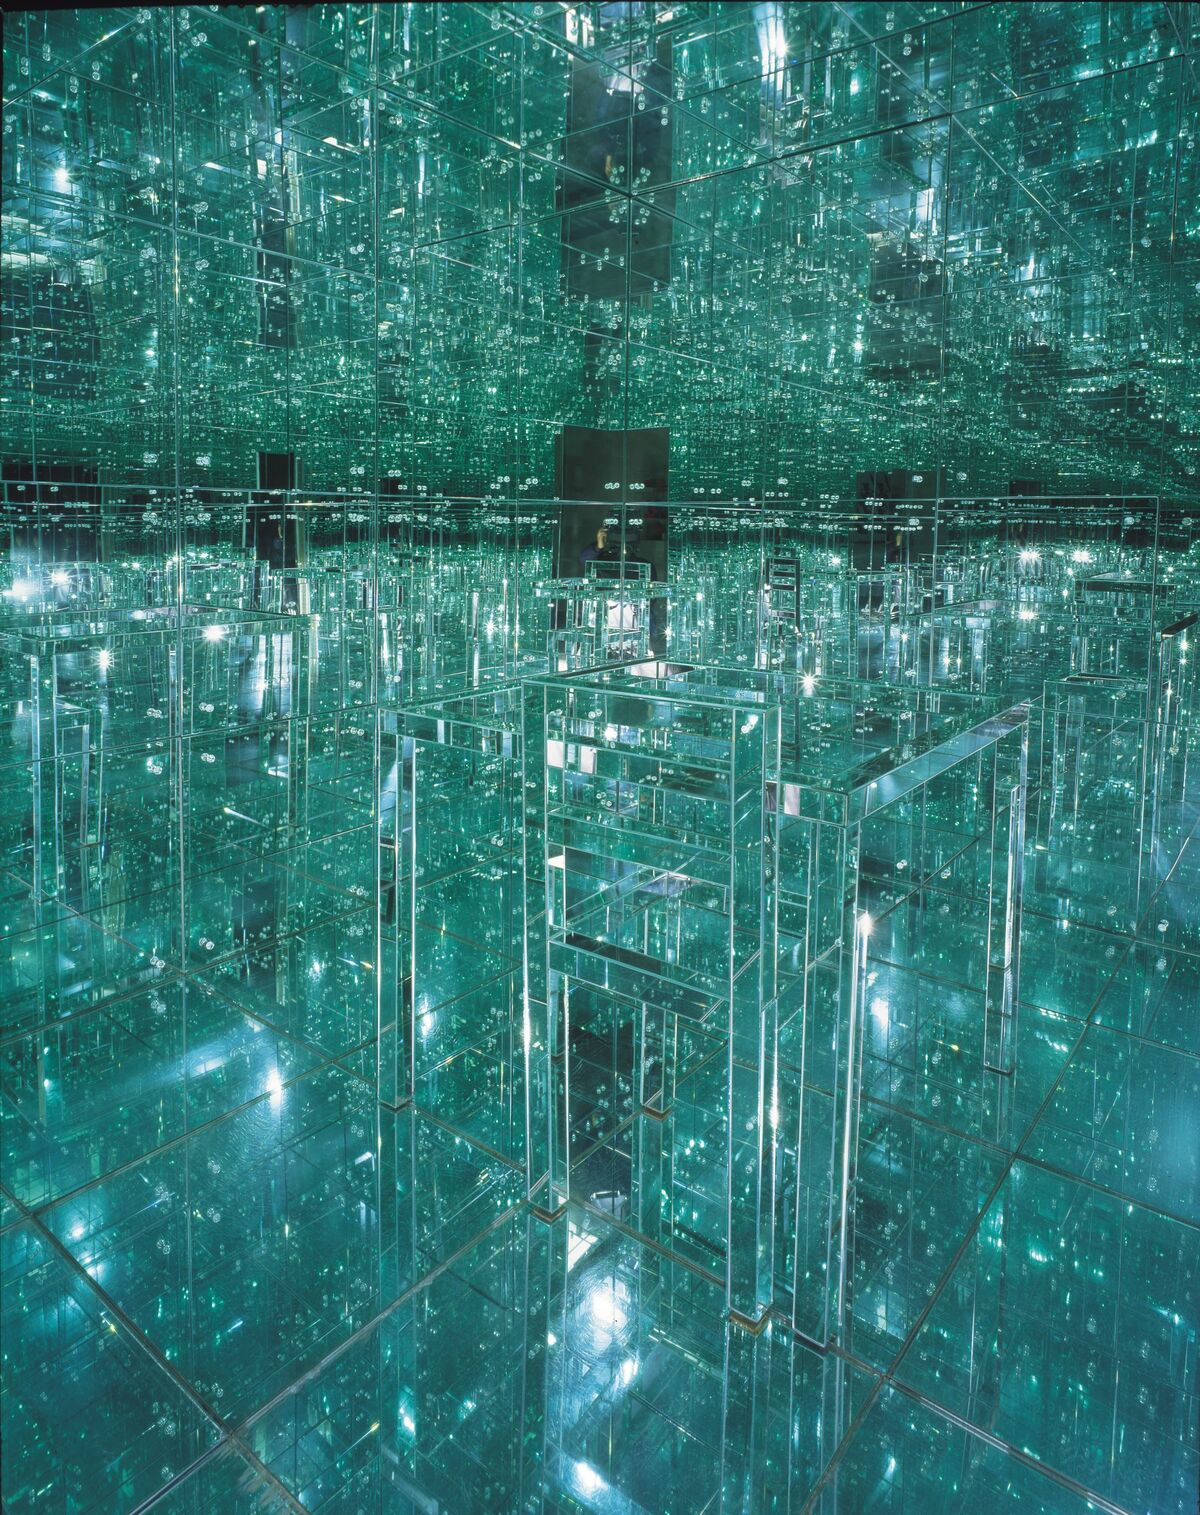 Installation view of Lucas Samaras, Mirrored Room, 1996. Photo by Tom Loonan. Courtesy of the Albright-Knox Art Gallery, Buffalo, New York.